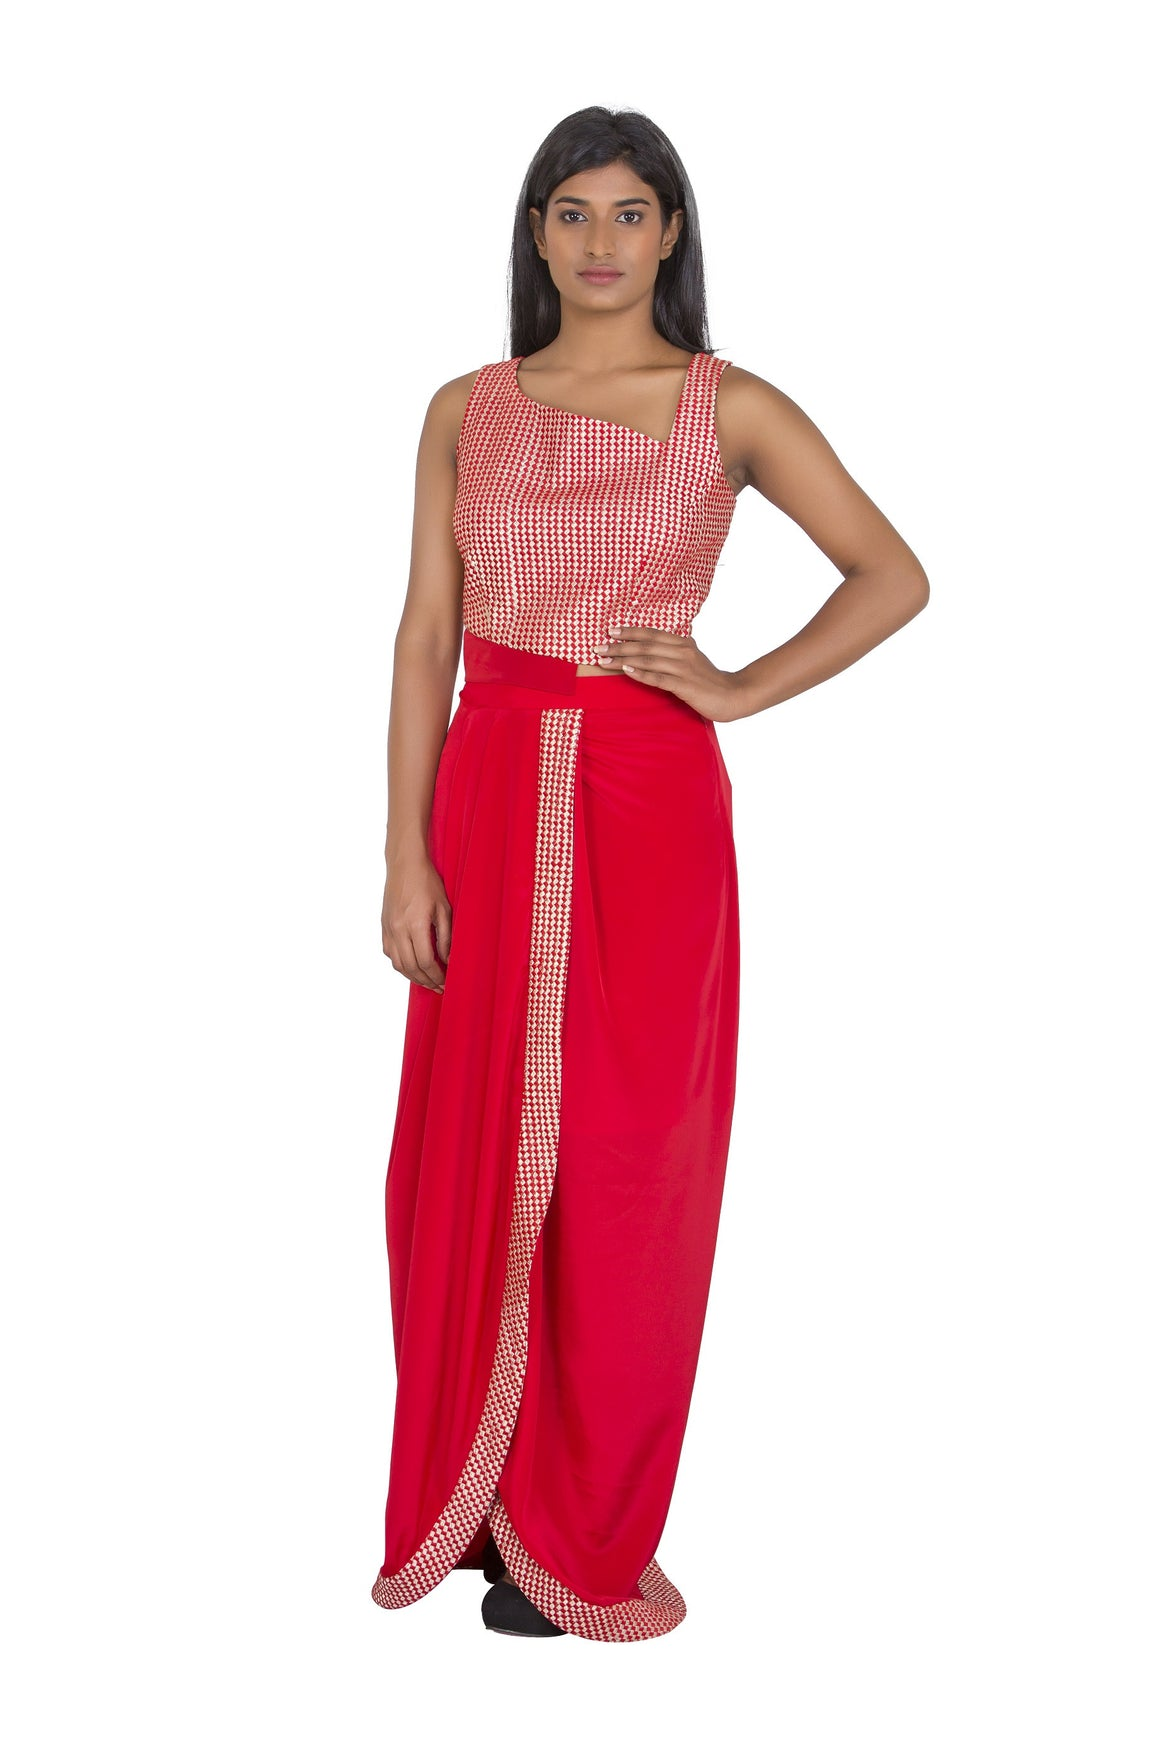 Red cropped blouse with dhoti skirt